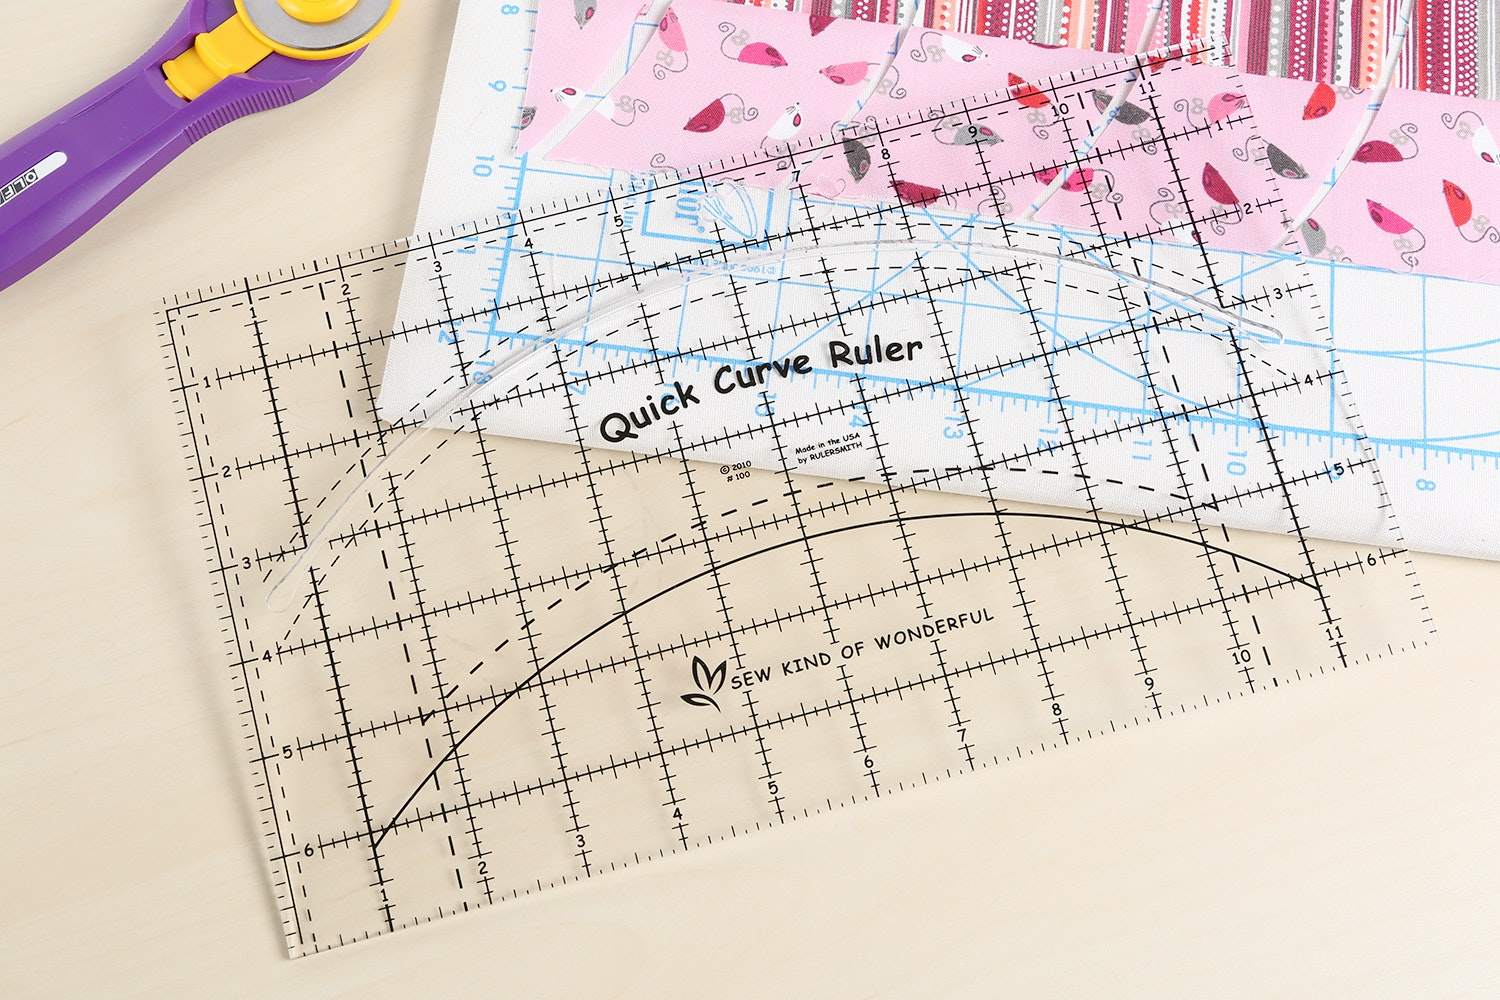 Quick Curve Ruler and Patterns